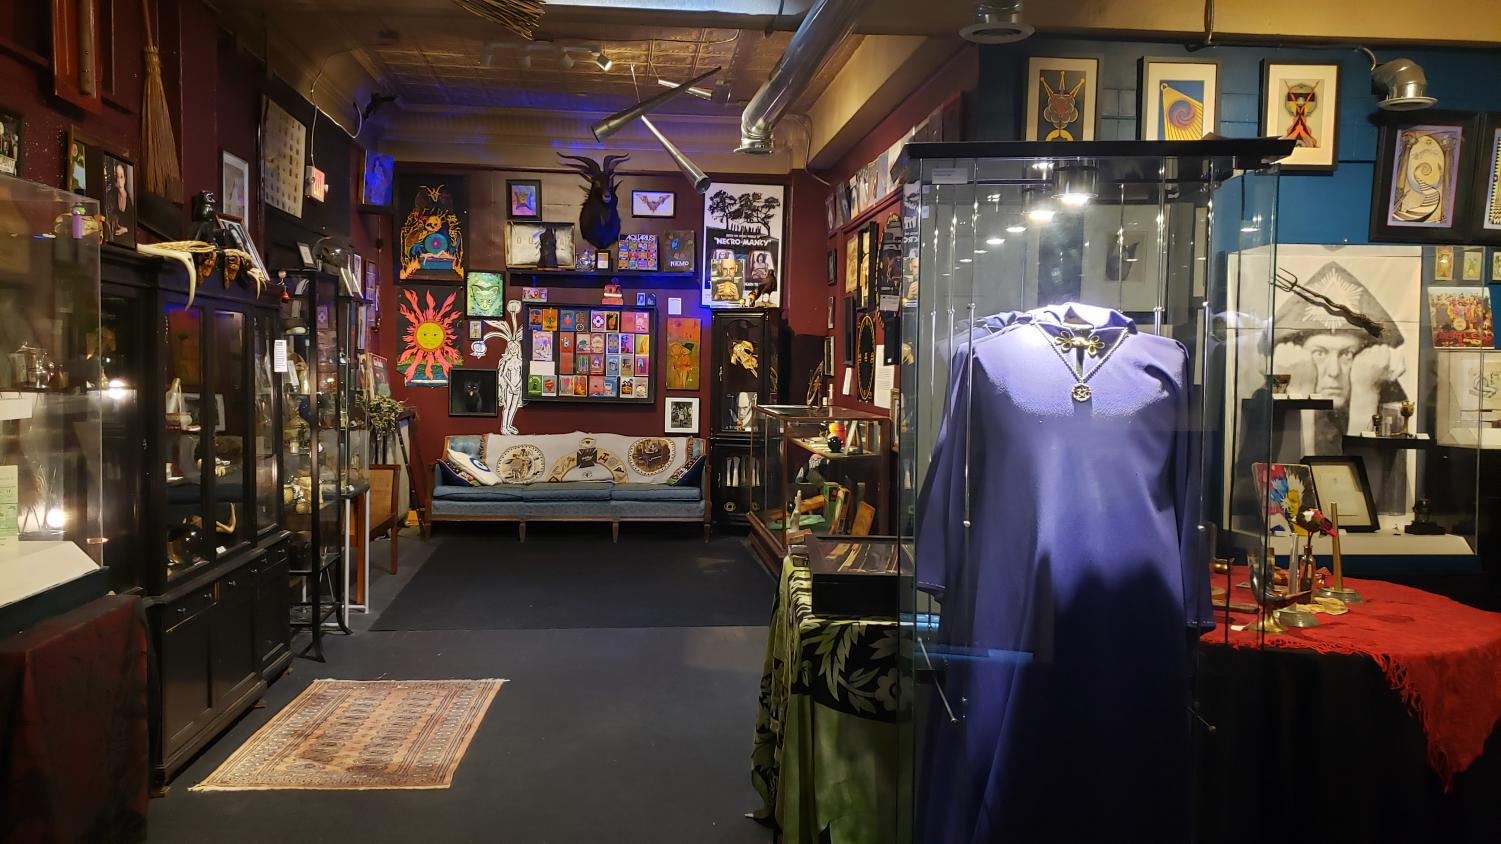 The Buckland Museum of Witchcraft and Magick began as the private collection of Raymond Buckland, the founder of American Wicca whose robe is pictured here.